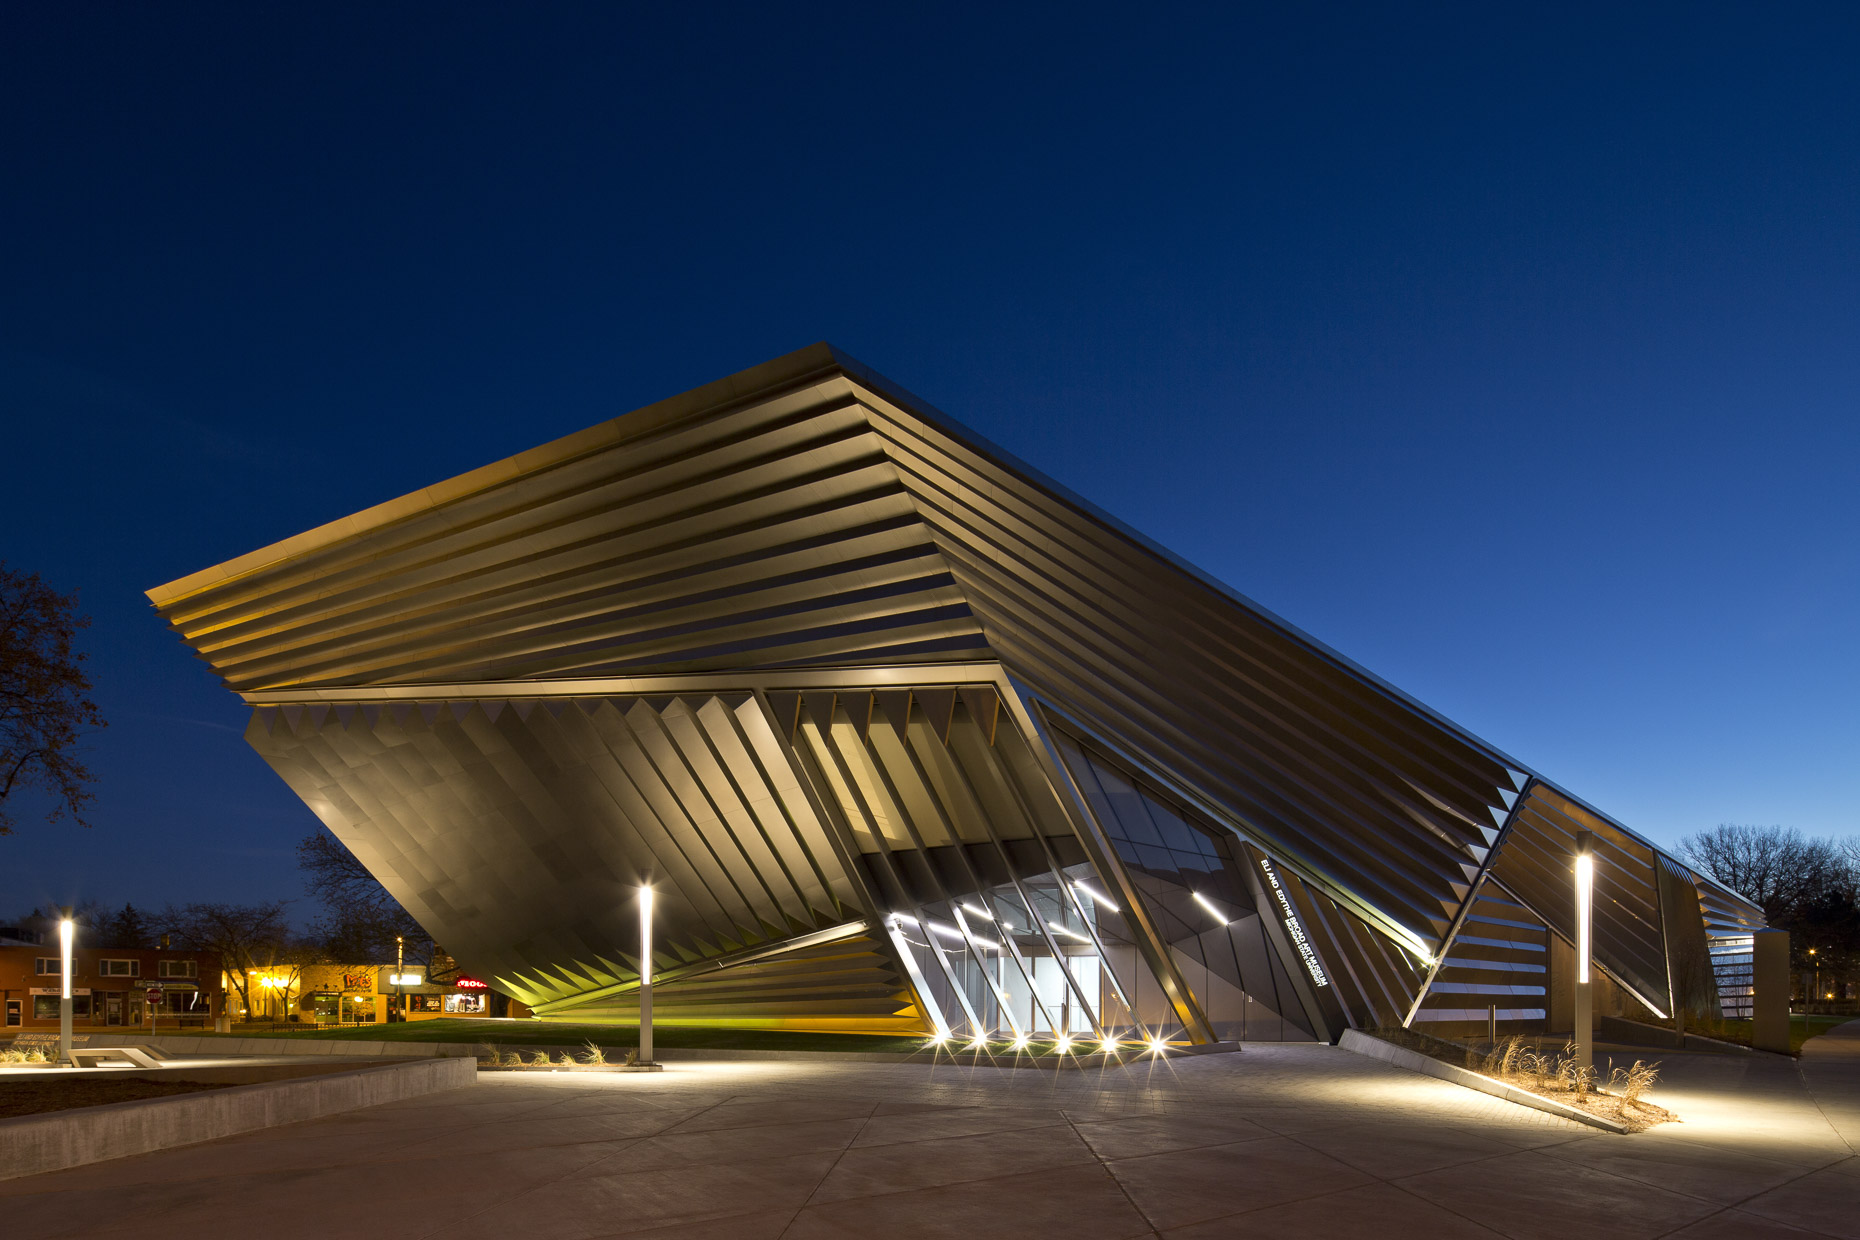 Eli & Edythe Broad Art Museum at Michigan State University by Zaha Hadid Architects Photographed by Brad Feinknopf based in Columbus, Ohio